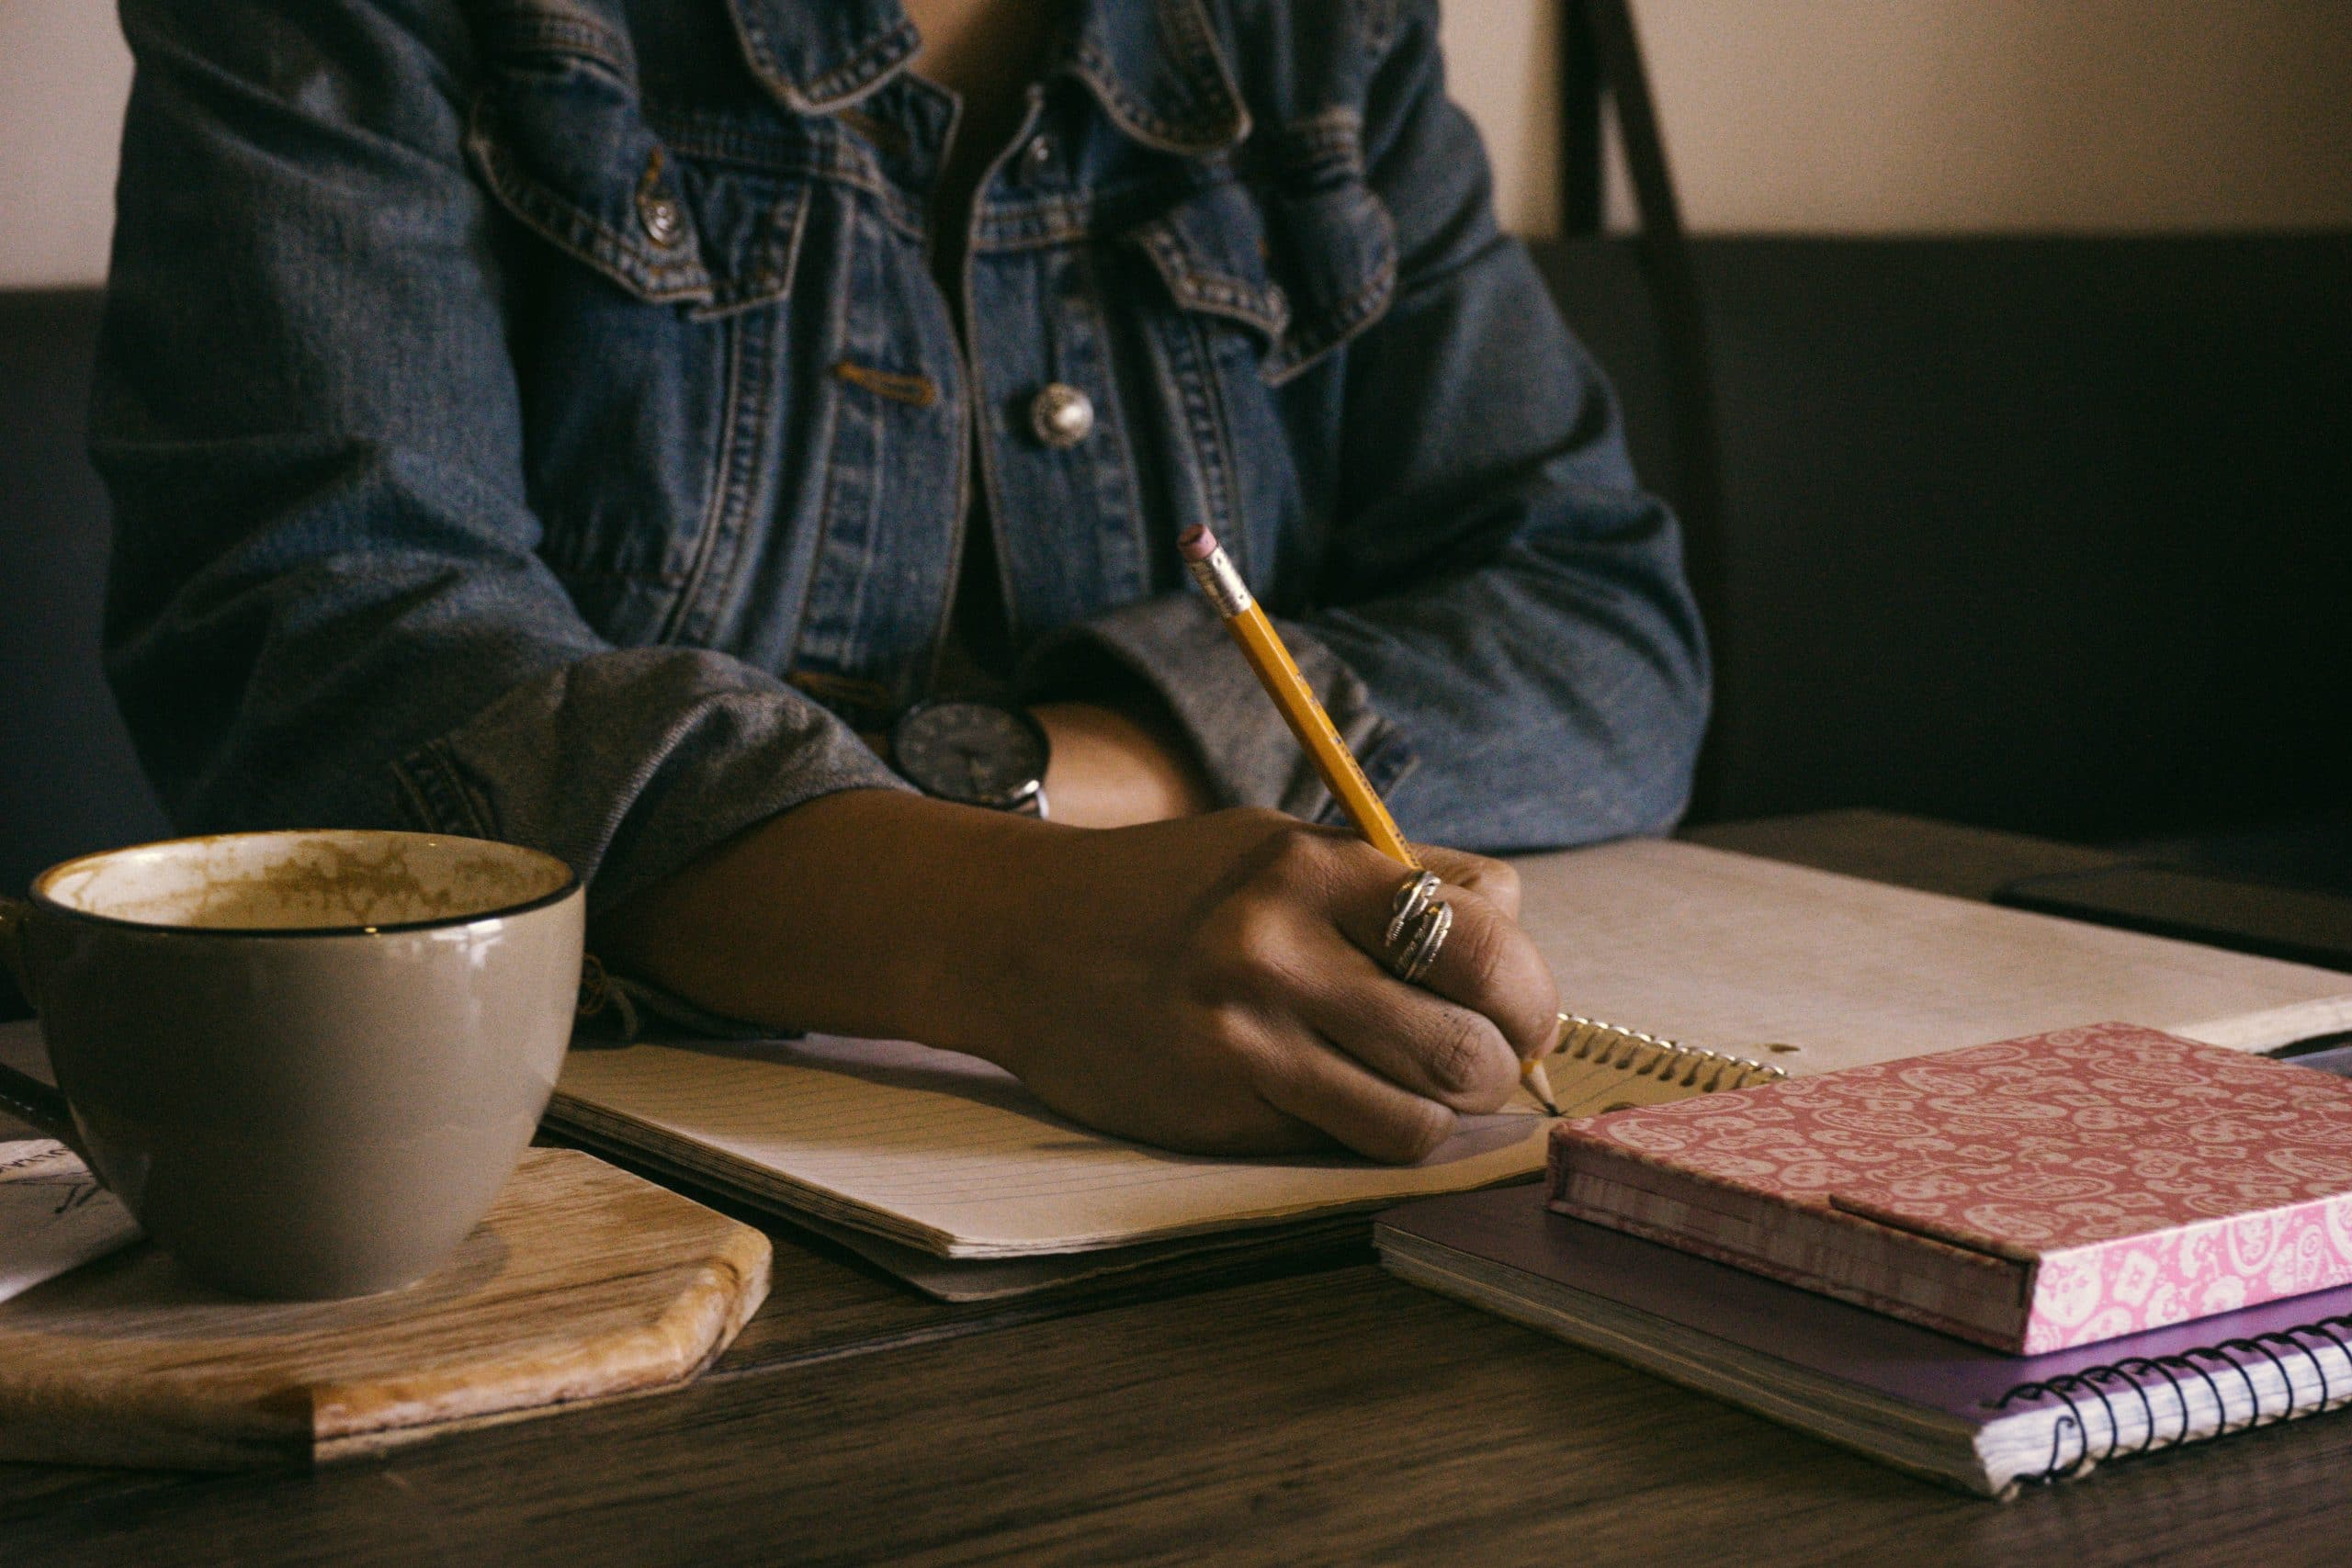 Write for the Ability Toolbox. Image: African-American woman writing in notebook.